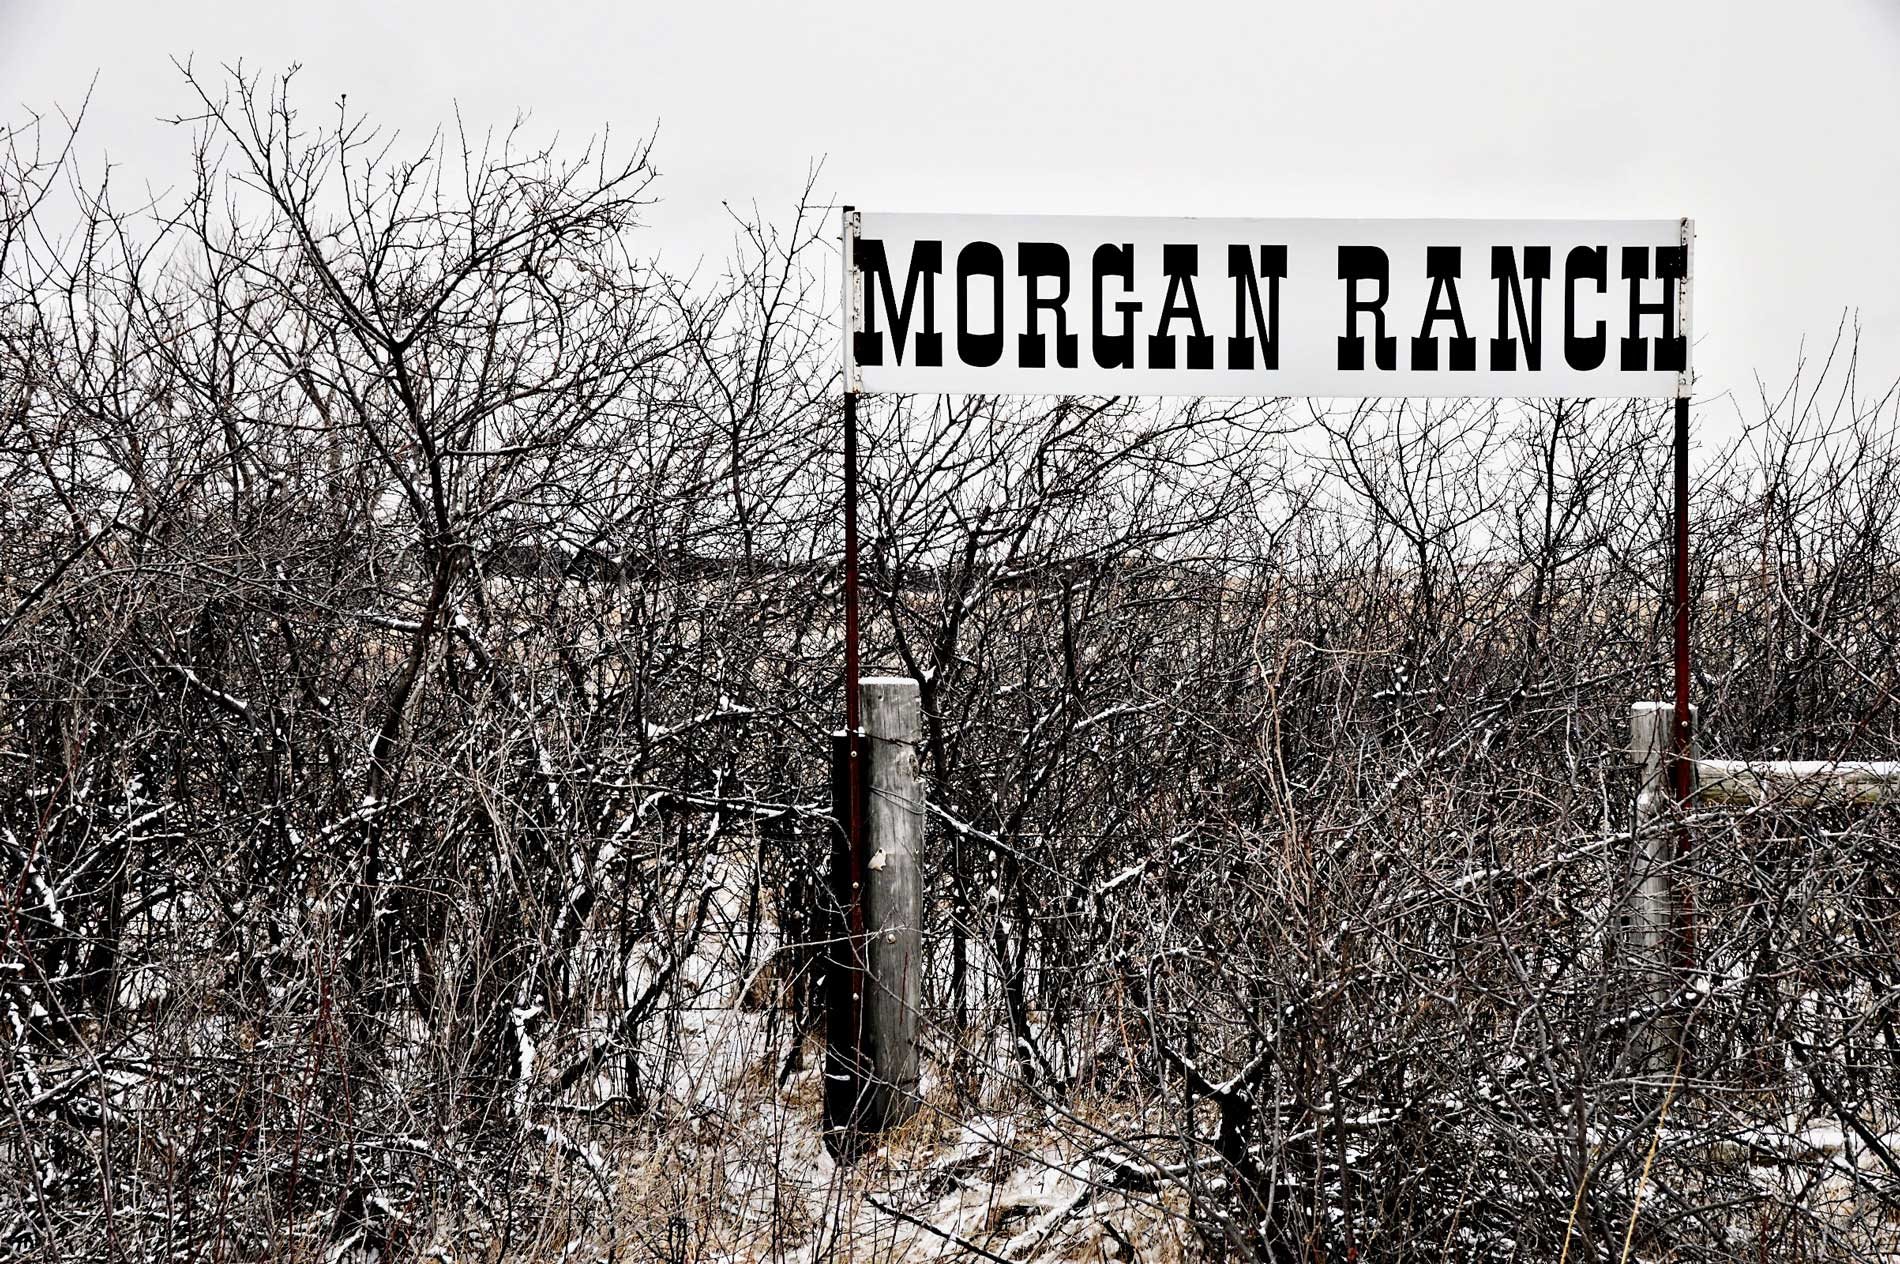 Morgan Ranch Schild